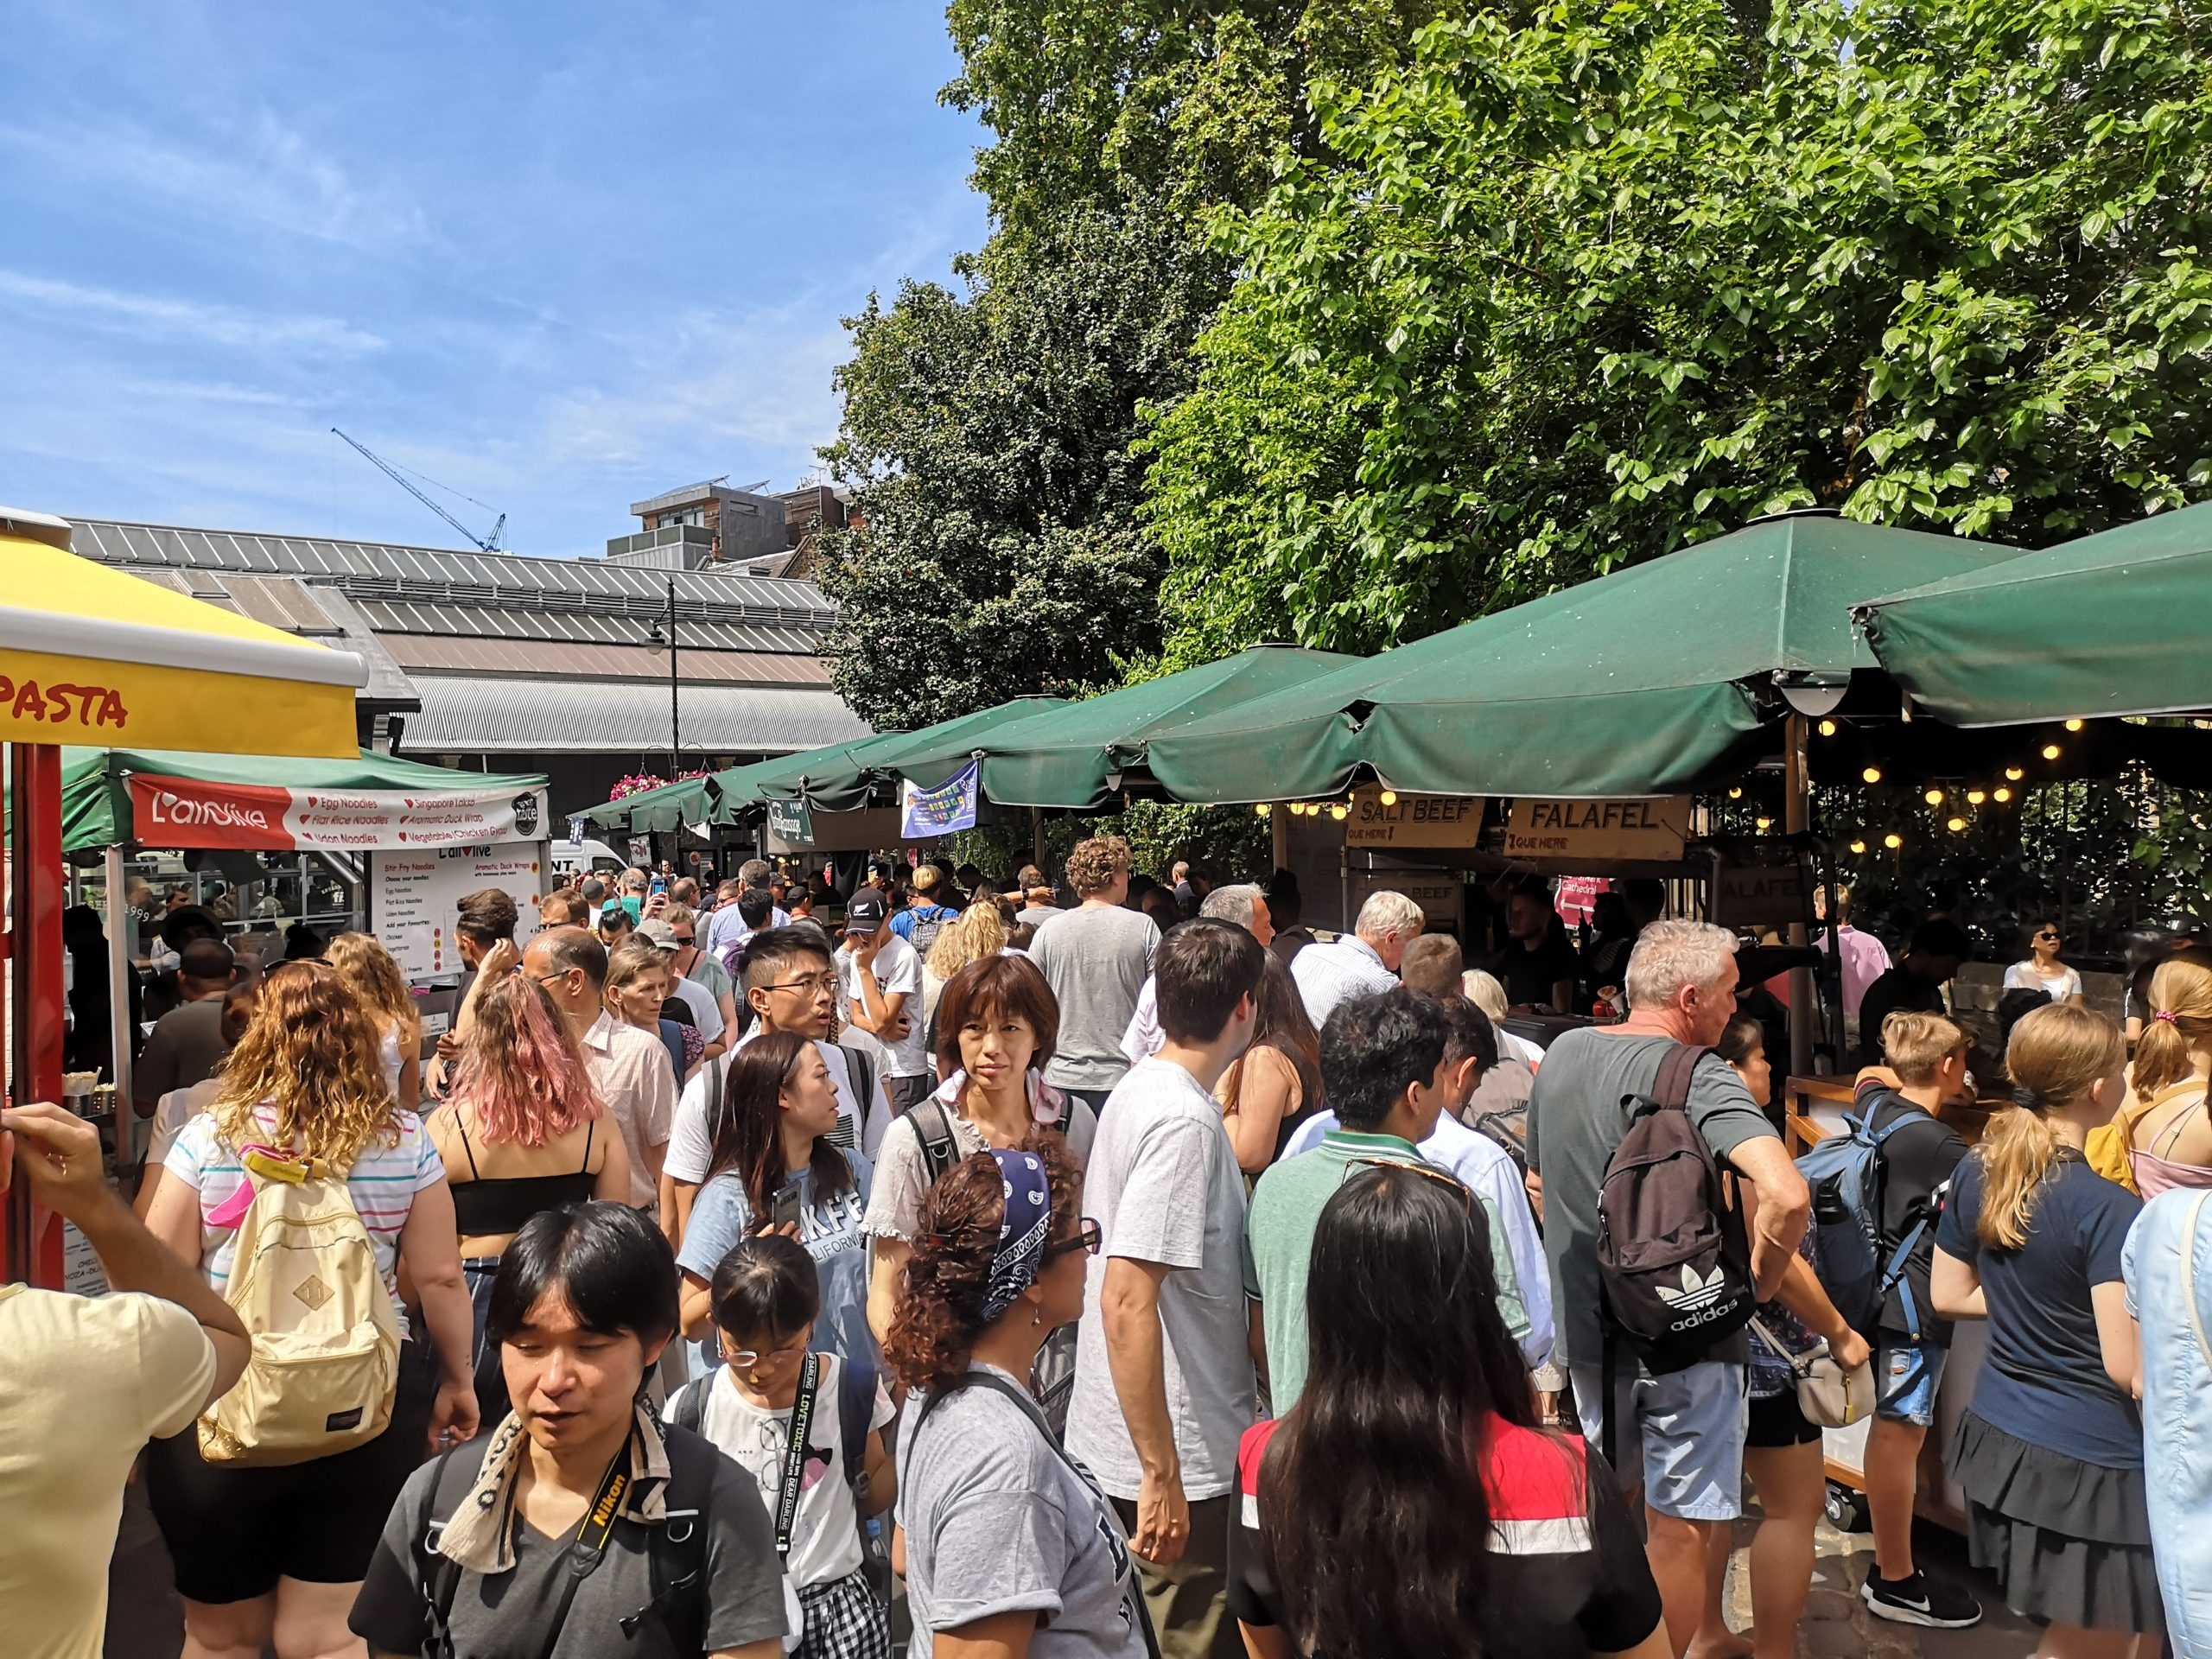 Borough Food Market, London, England